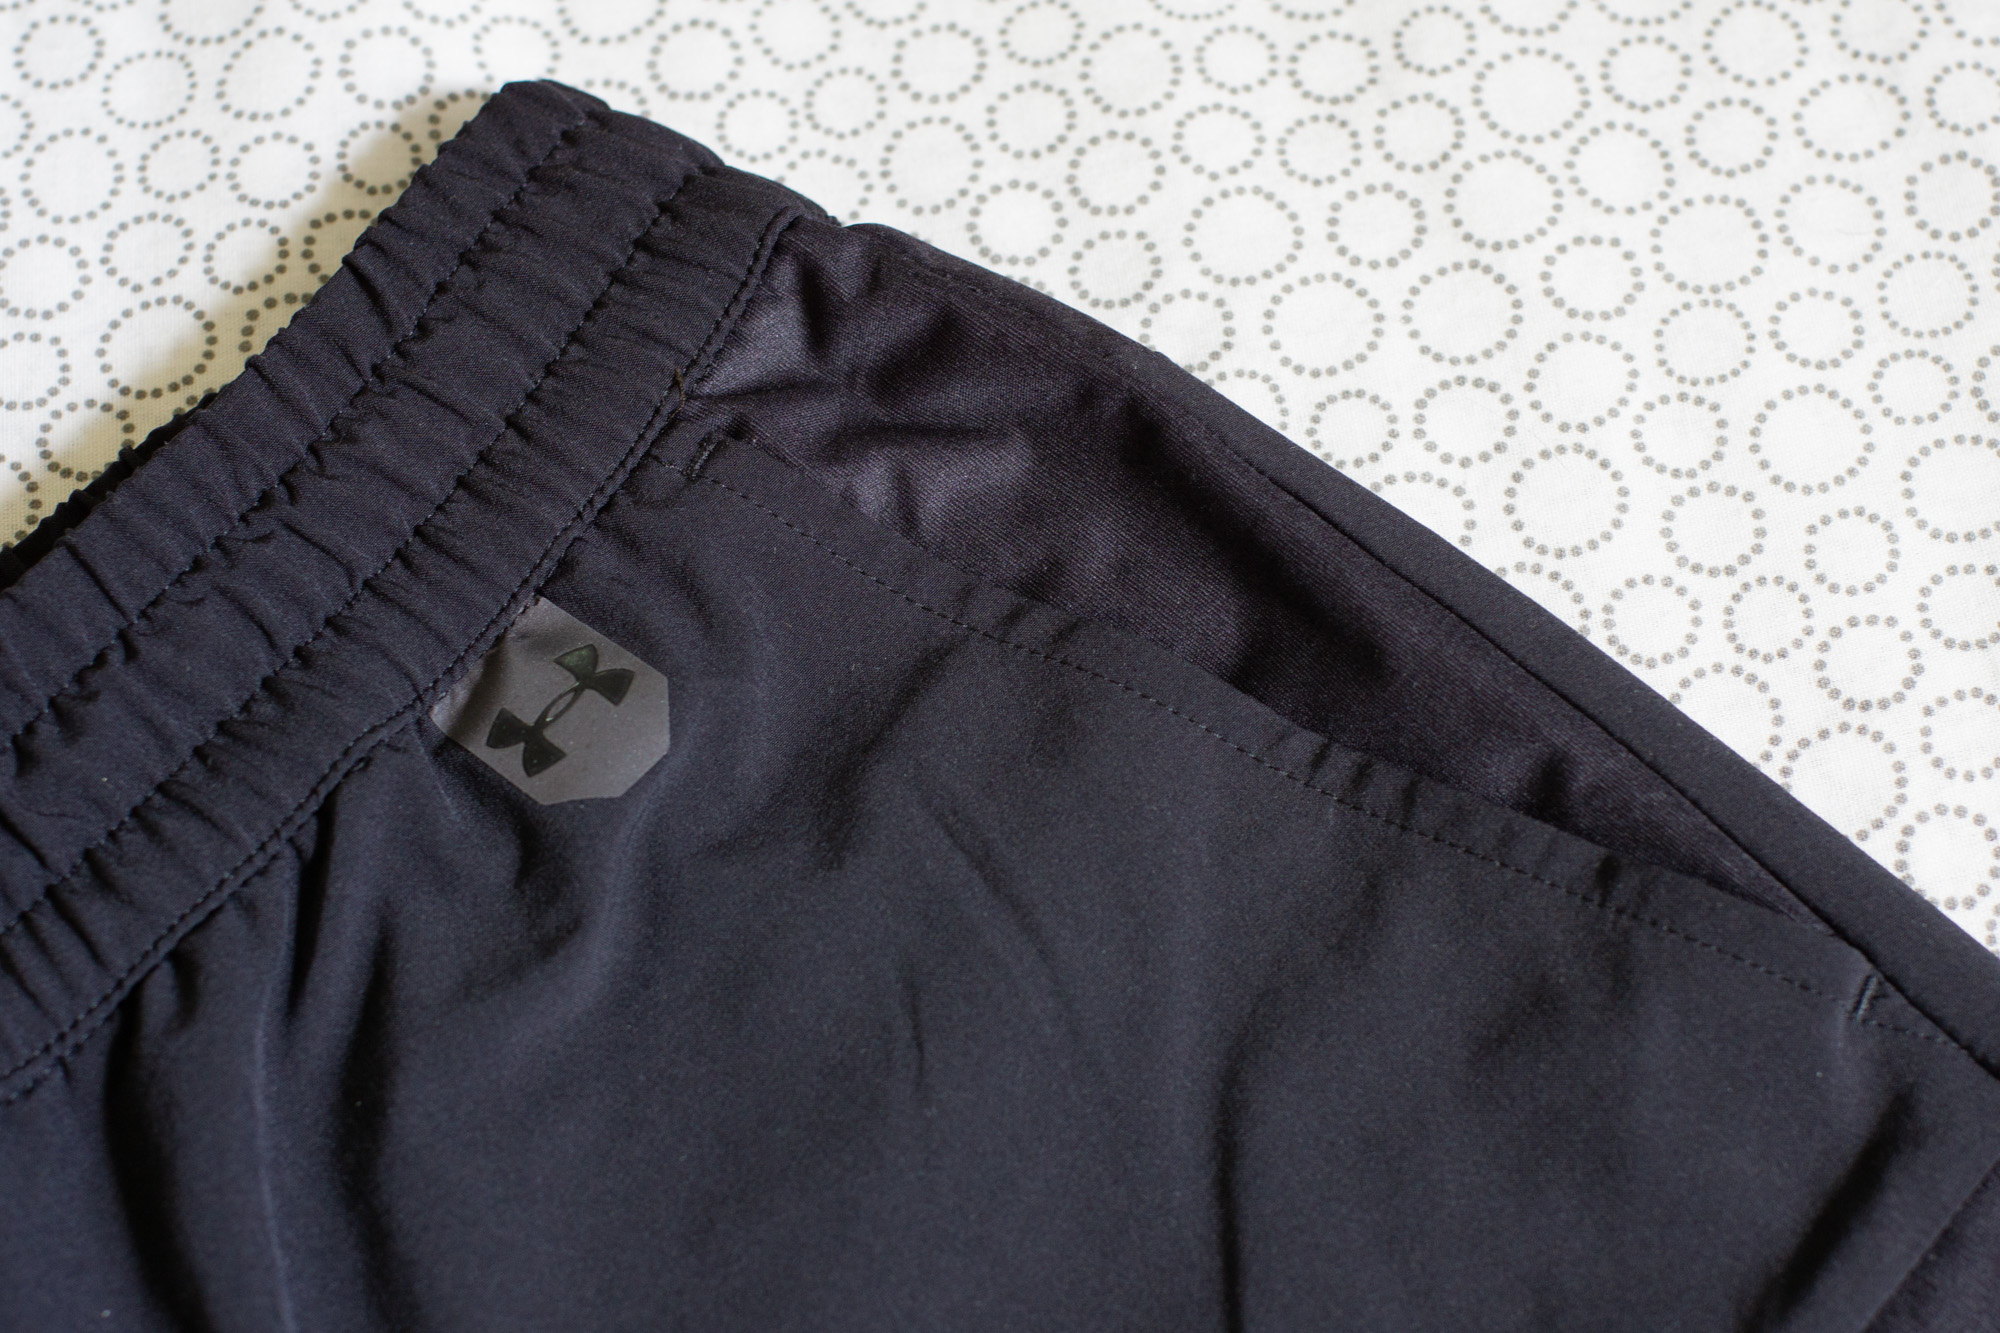 UA Unstoppable Gore Windstopper Pant waist